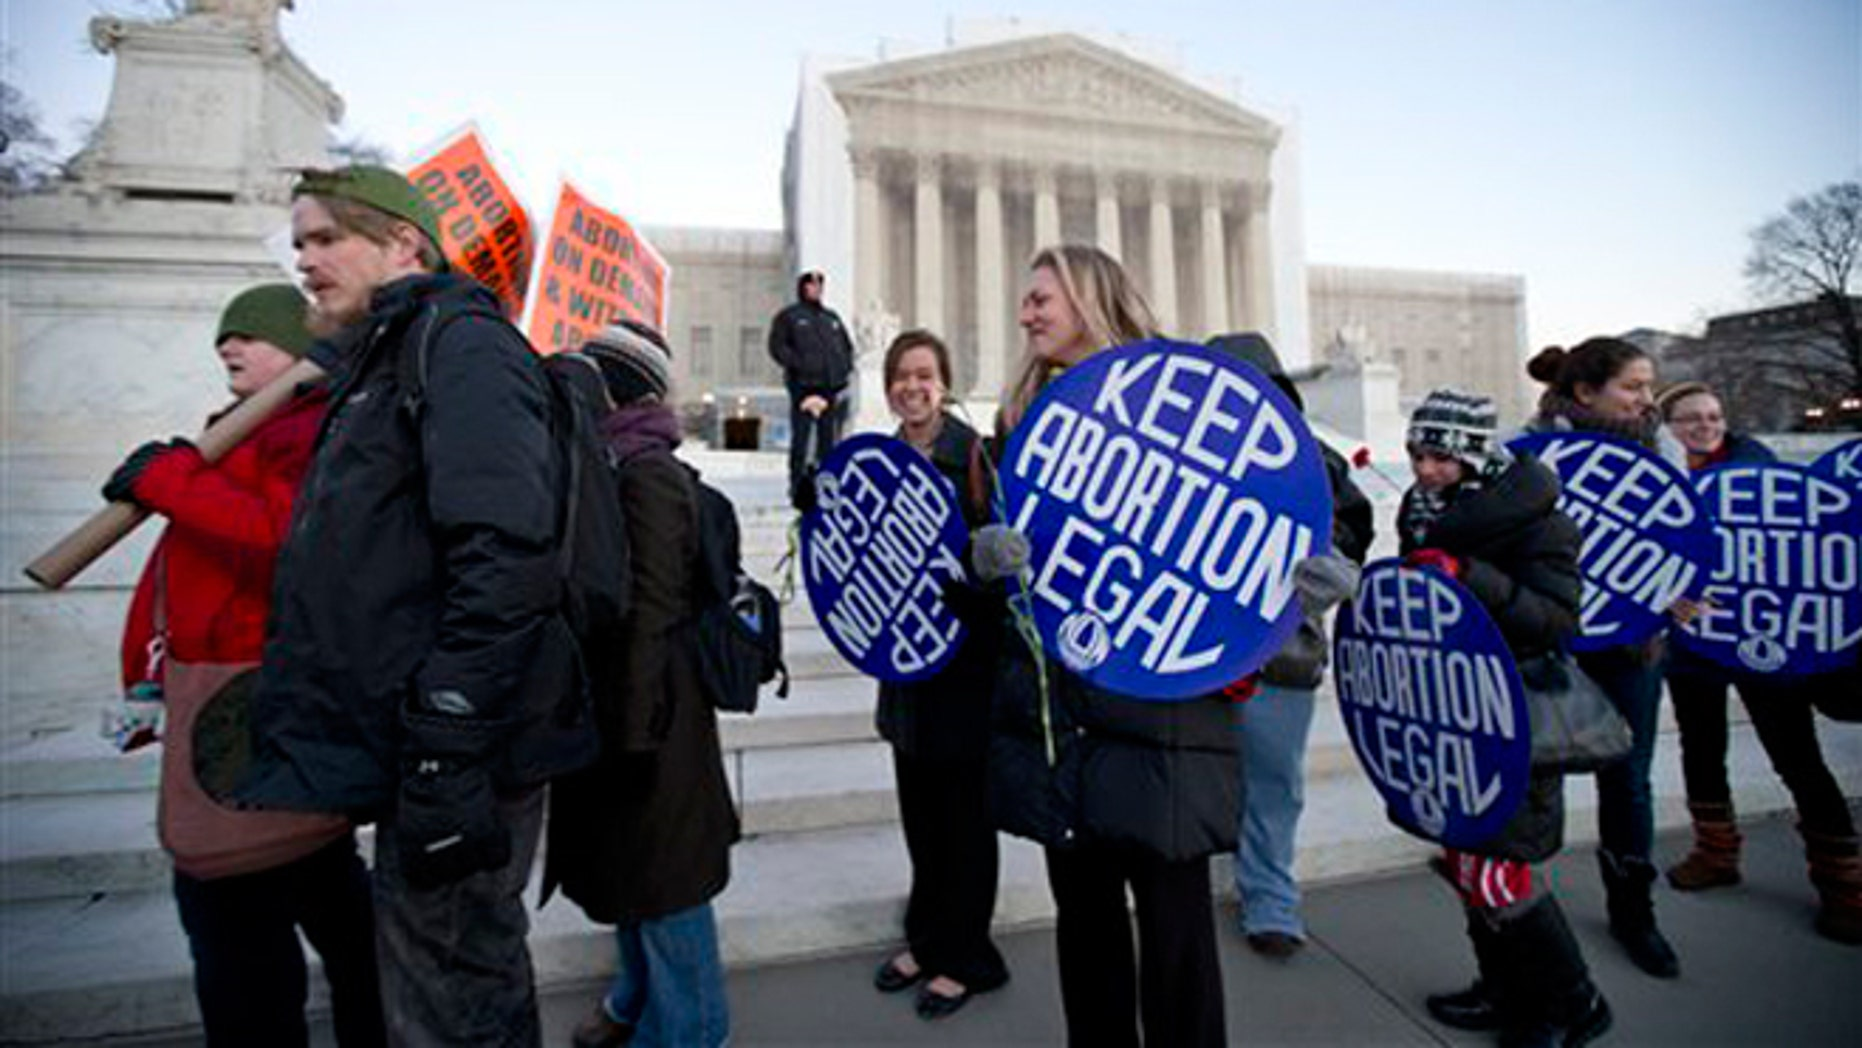 FILE -- Jan. 22, 2013: Bettina Hager, center, and Jeff Foster, left, join a candlelight vigil in front of the U.S. Supreme Court in Washington, to commemorate the 40th anniversary of Roe v. Wade, the Supreme Court decision that legalized abortion.